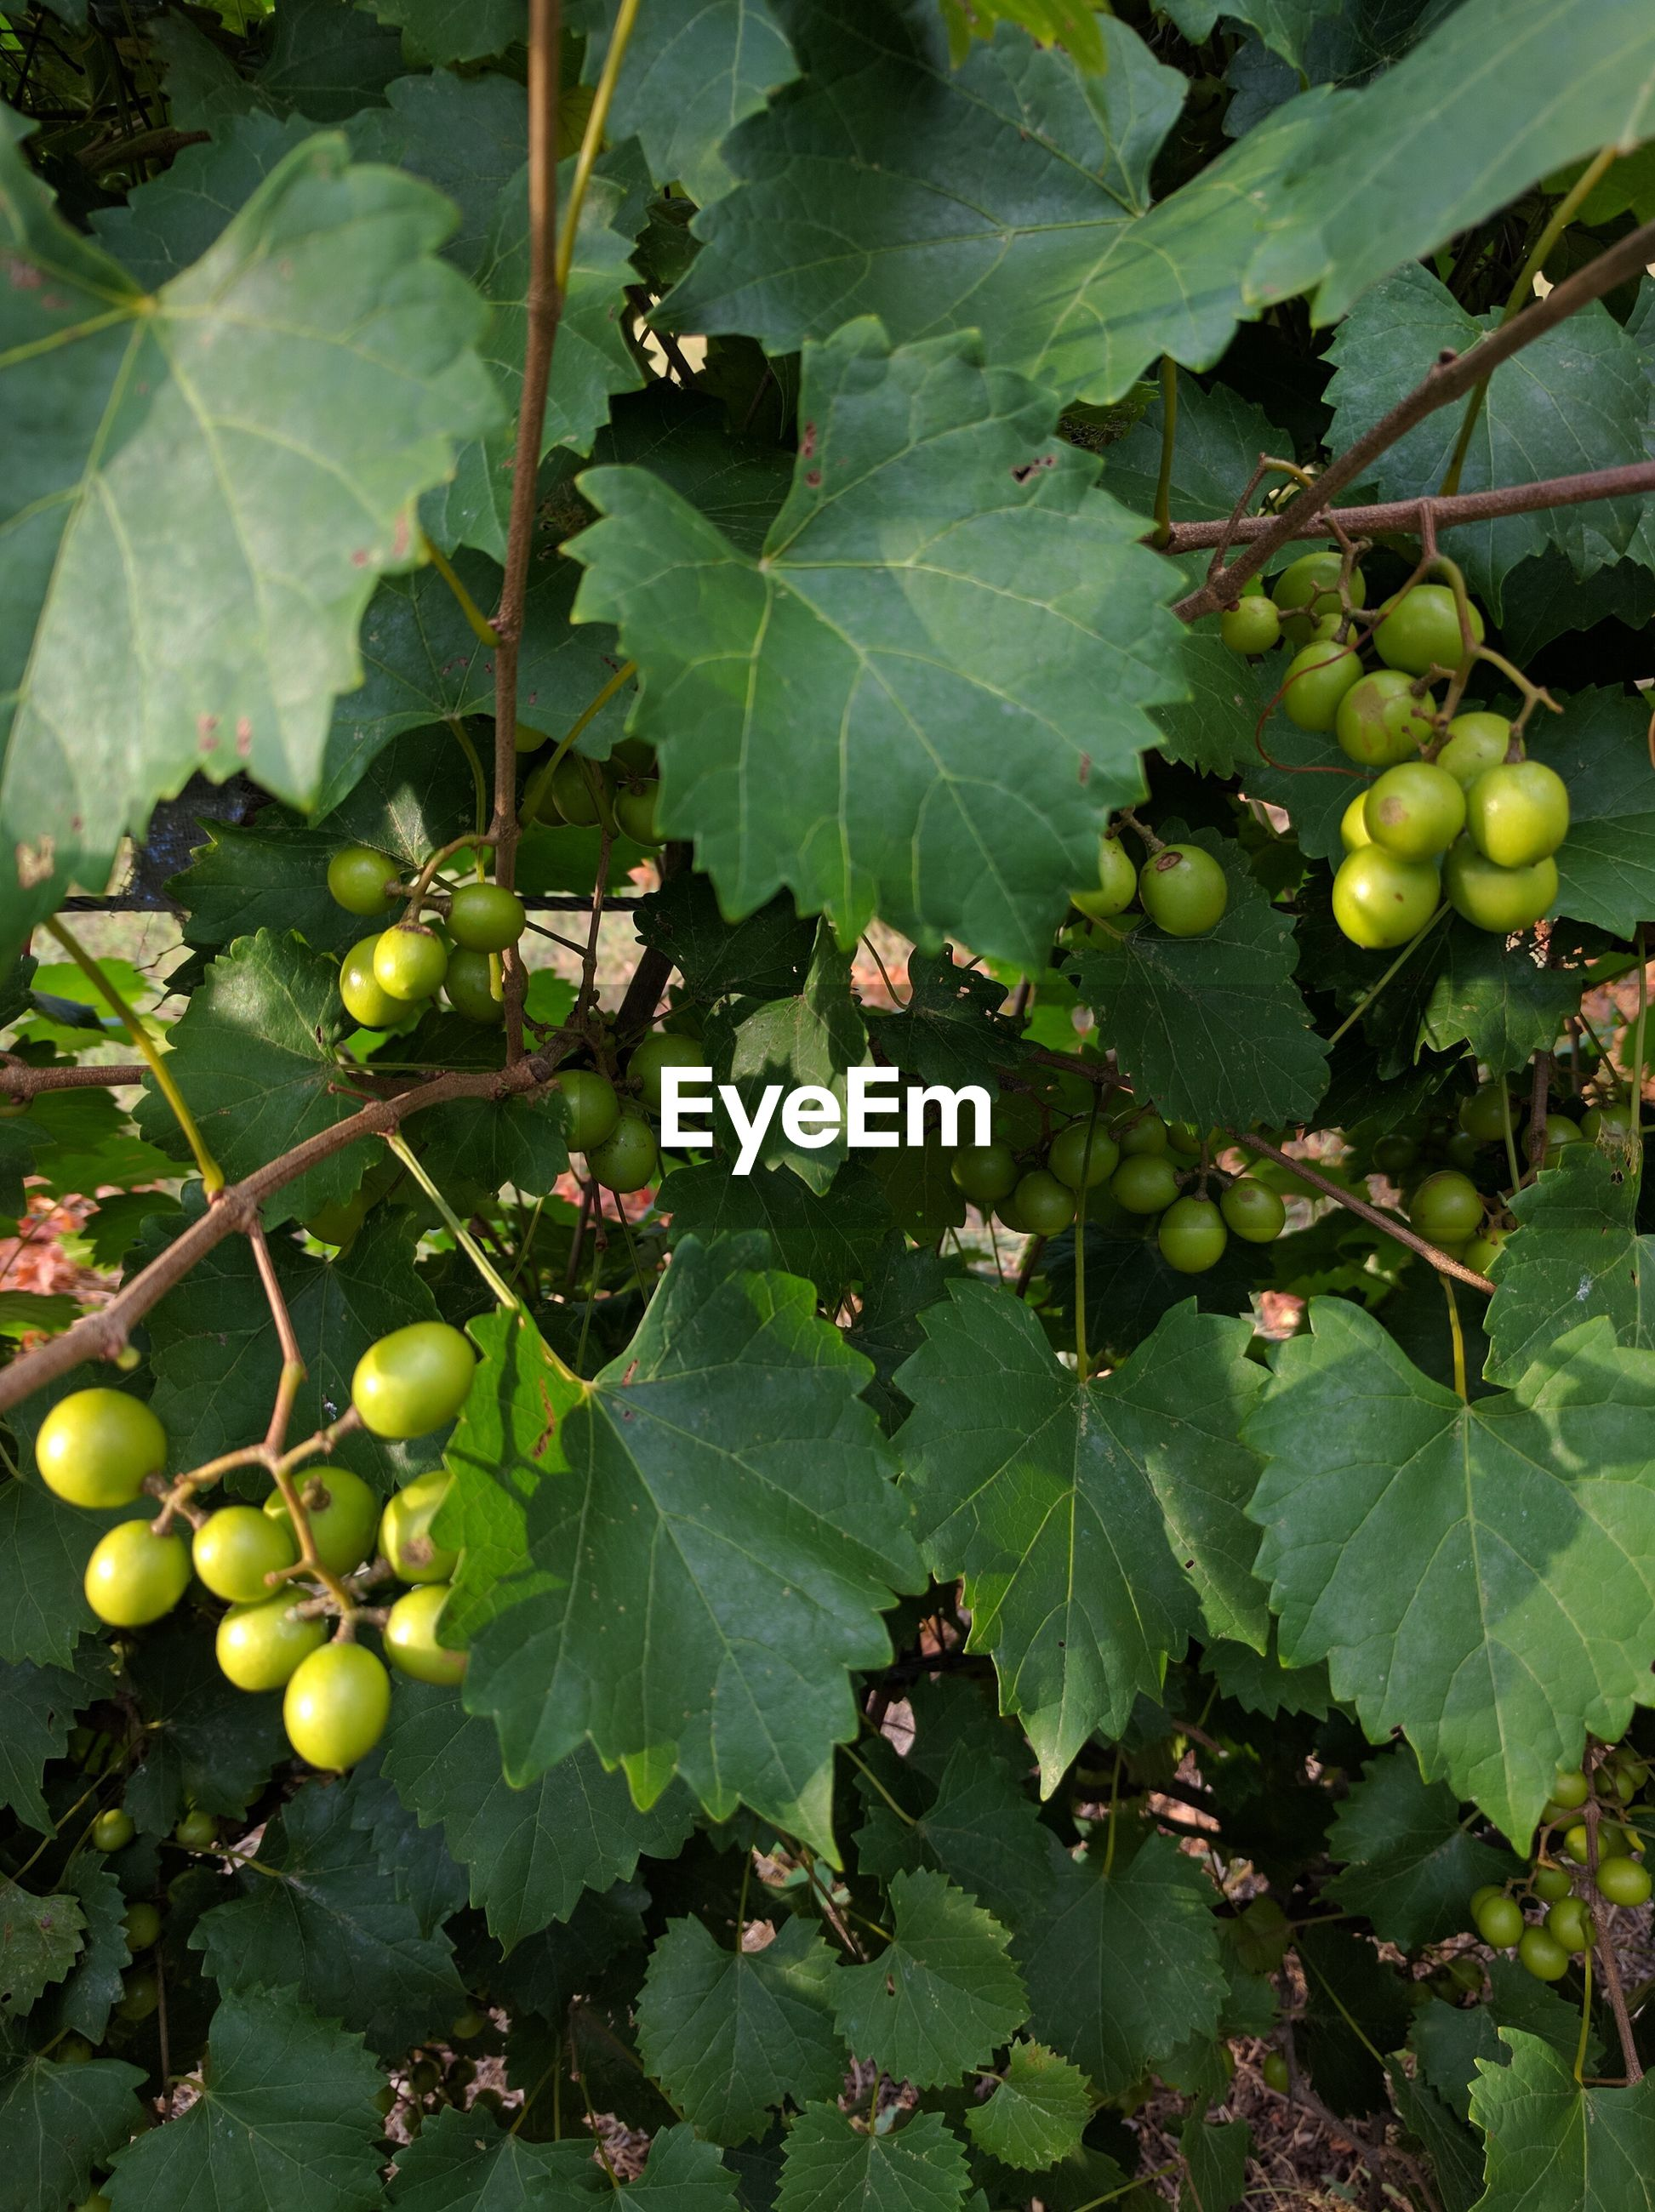 CLOSE-UP OF GRAPES HANGING FROM TREE